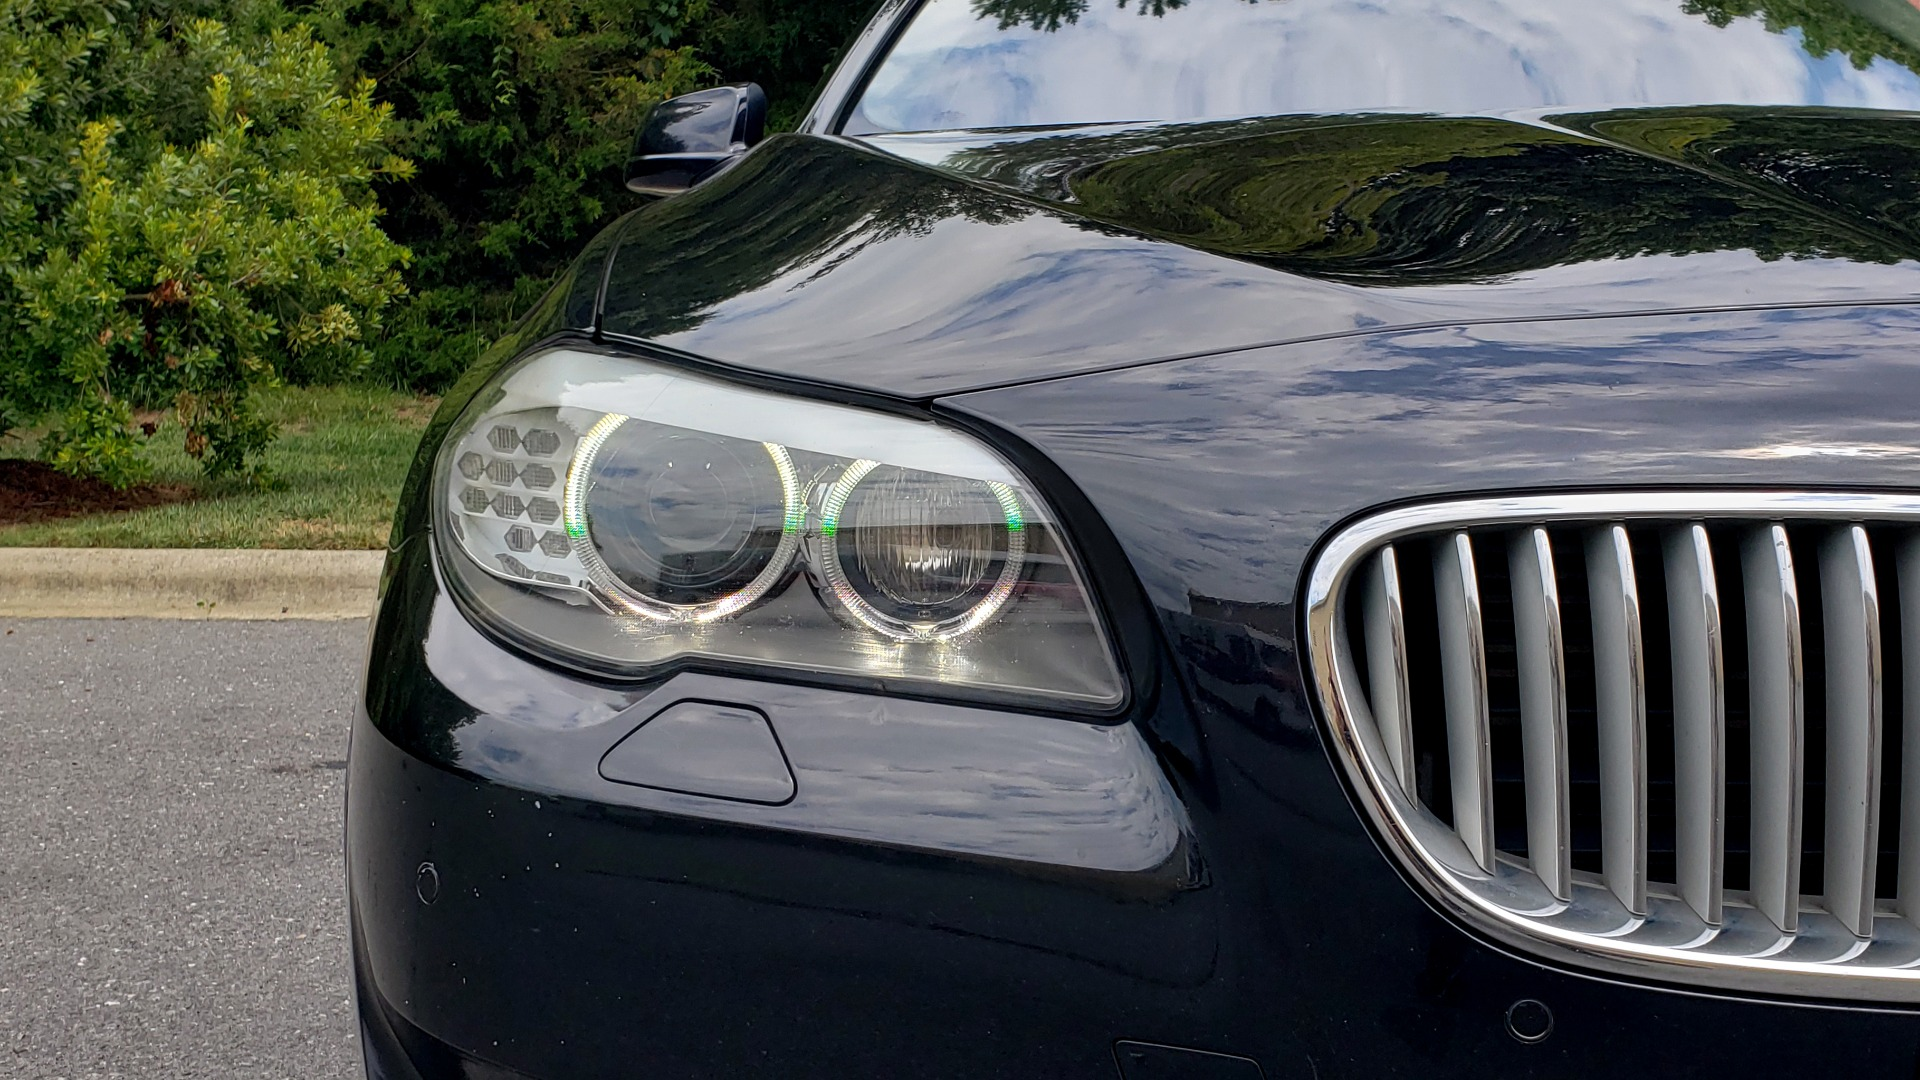 Used 2013 BMW 5 SERIES 550I XDRIVE LUX PKG / EXEC / COLD WTHR / NAV / SUNROOF / REARVIEW for sale $17,995 at Formula Imports in Charlotte NC 28227 17